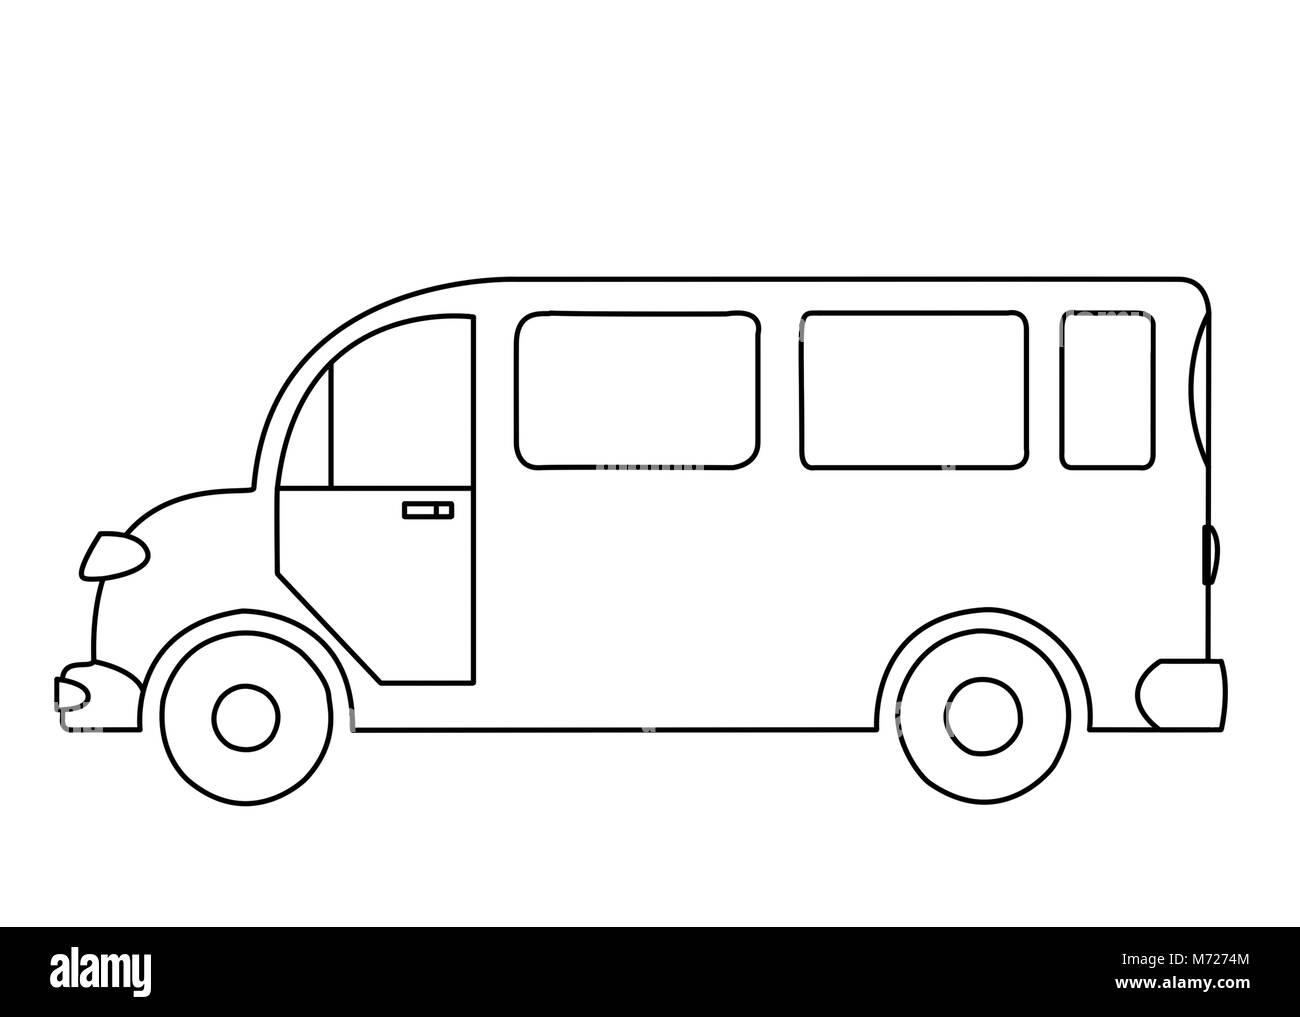 The contoured silhouette of a passenger bus on white background Stock Photo